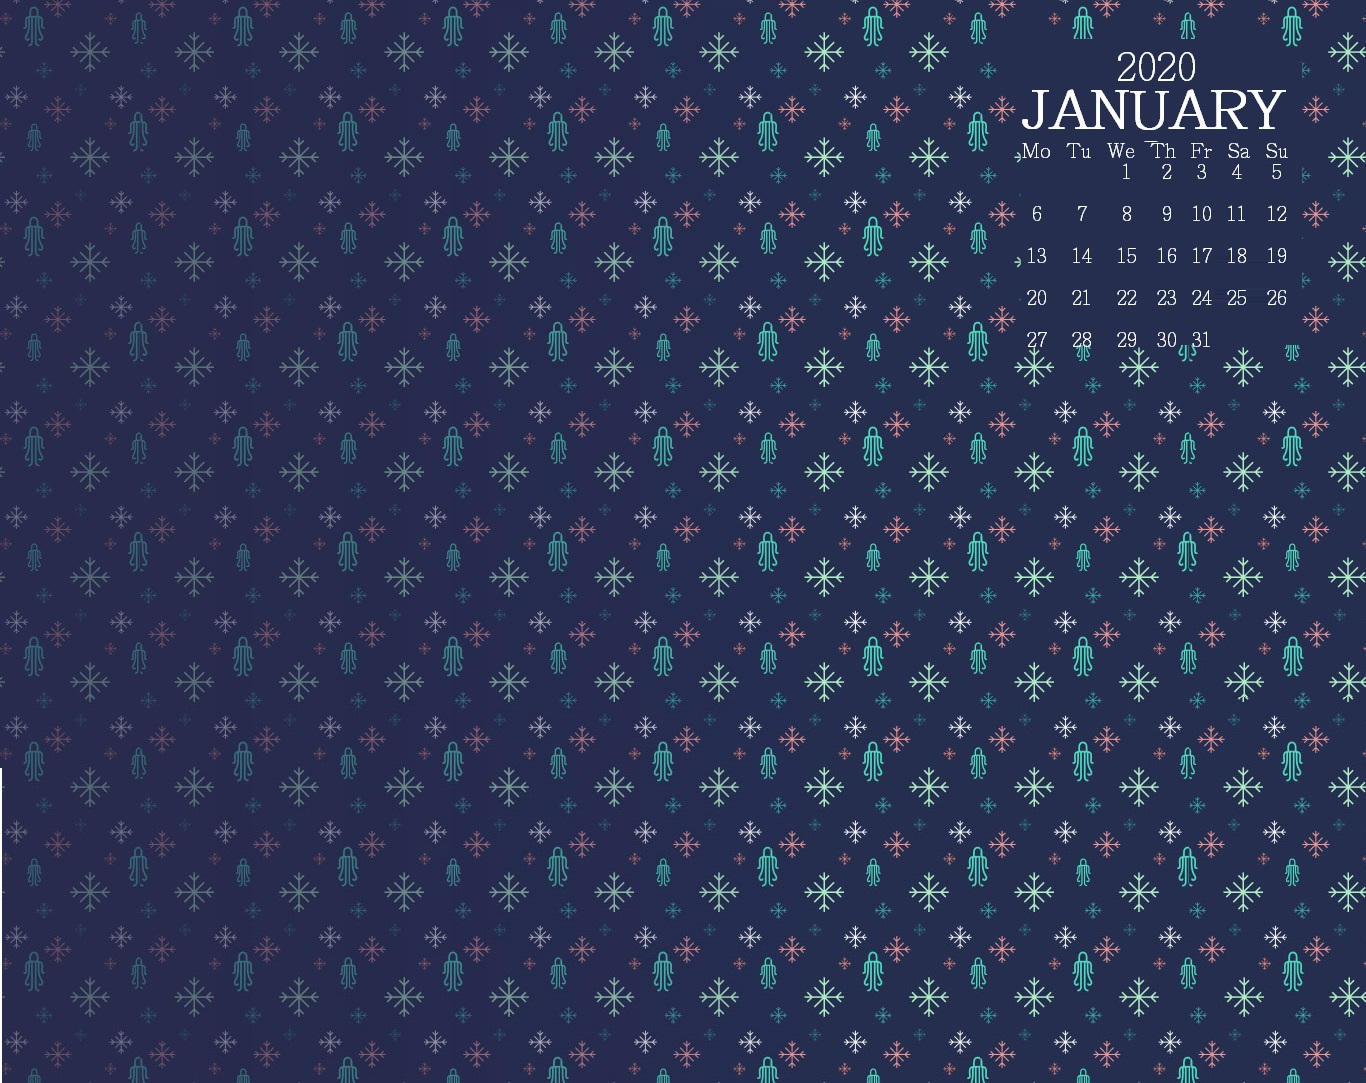 January 2020 Desktop Calendar Wallpaper Max Calendars 1366x1083